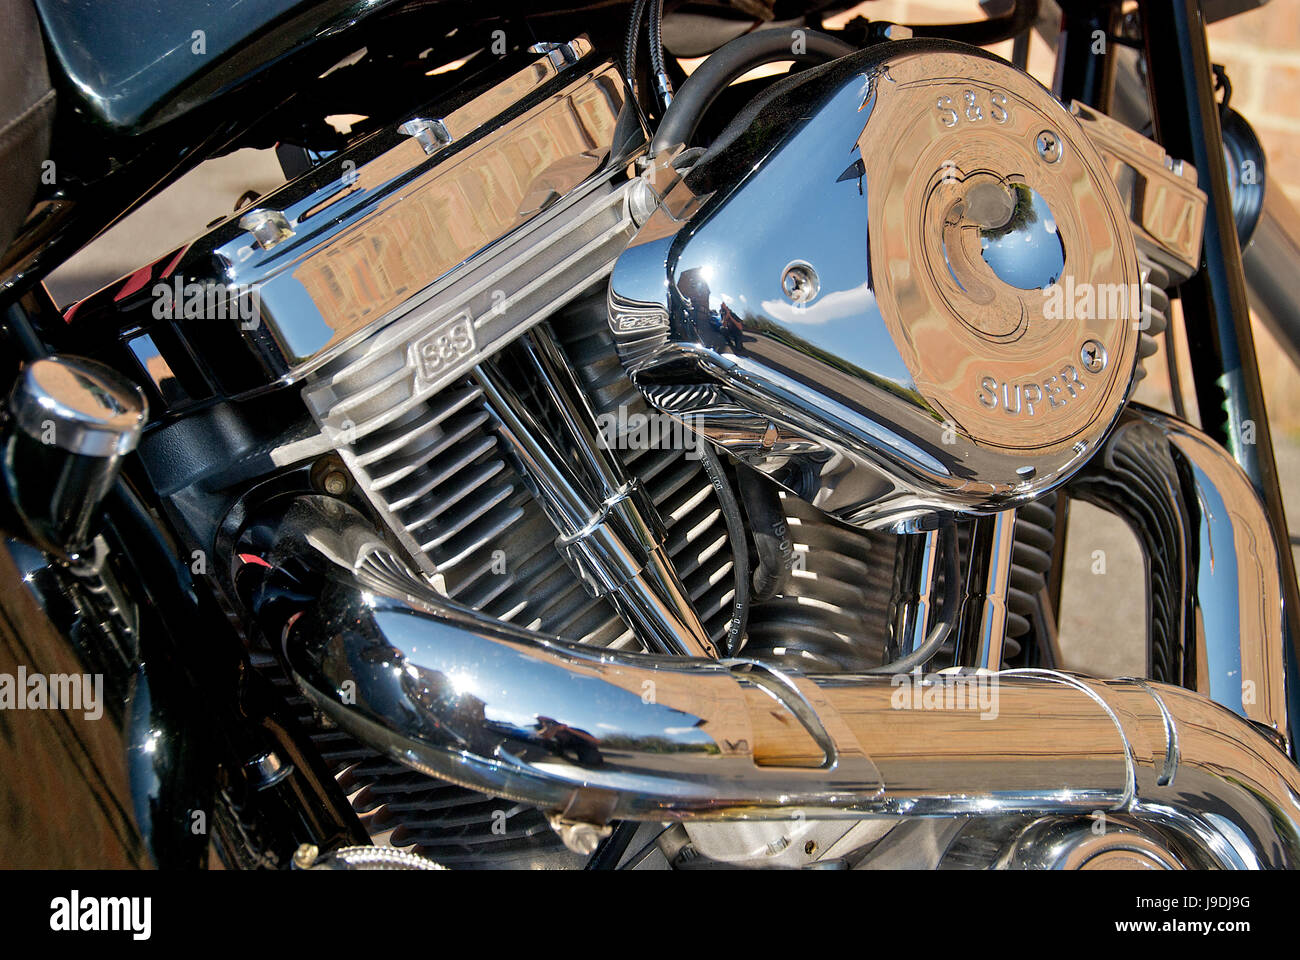 Detail of a custom built S & S chopper motorcycle Stock Photo